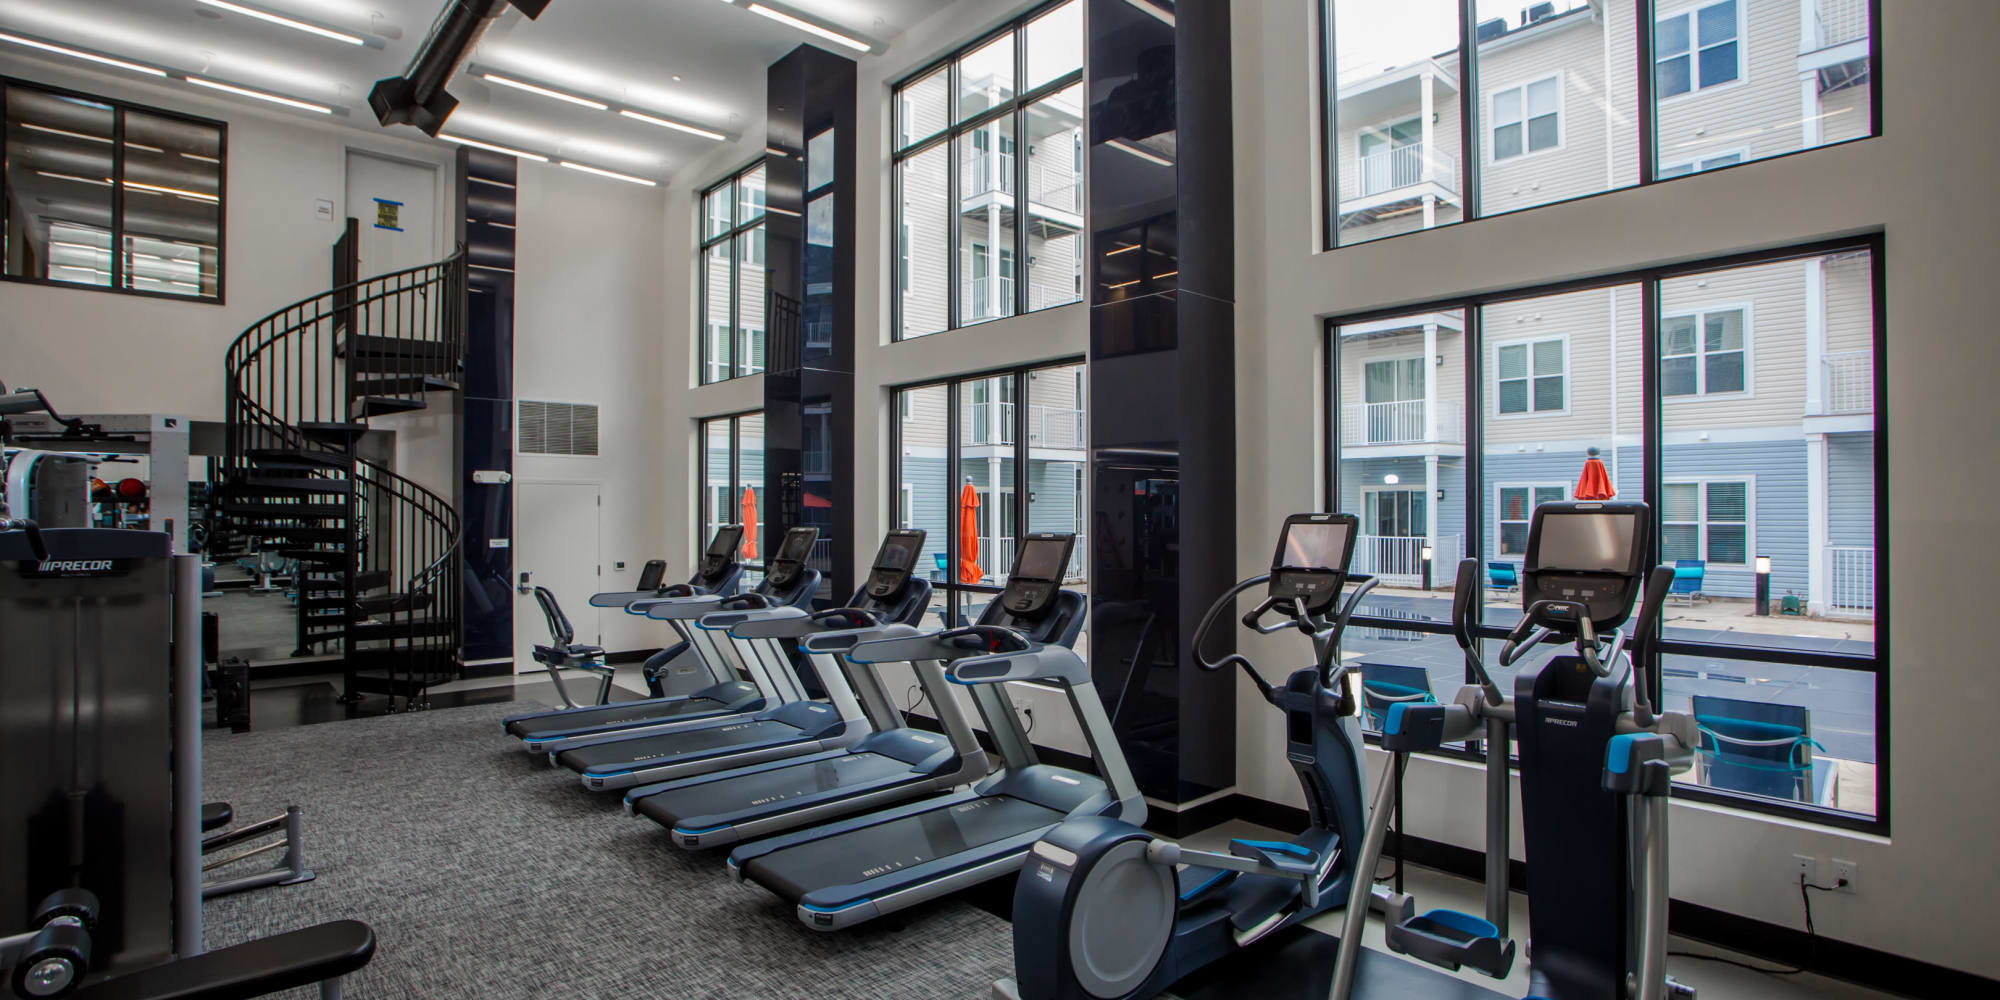 Fitness center at The Mark Parsippany in Parsippany, New Jersey.